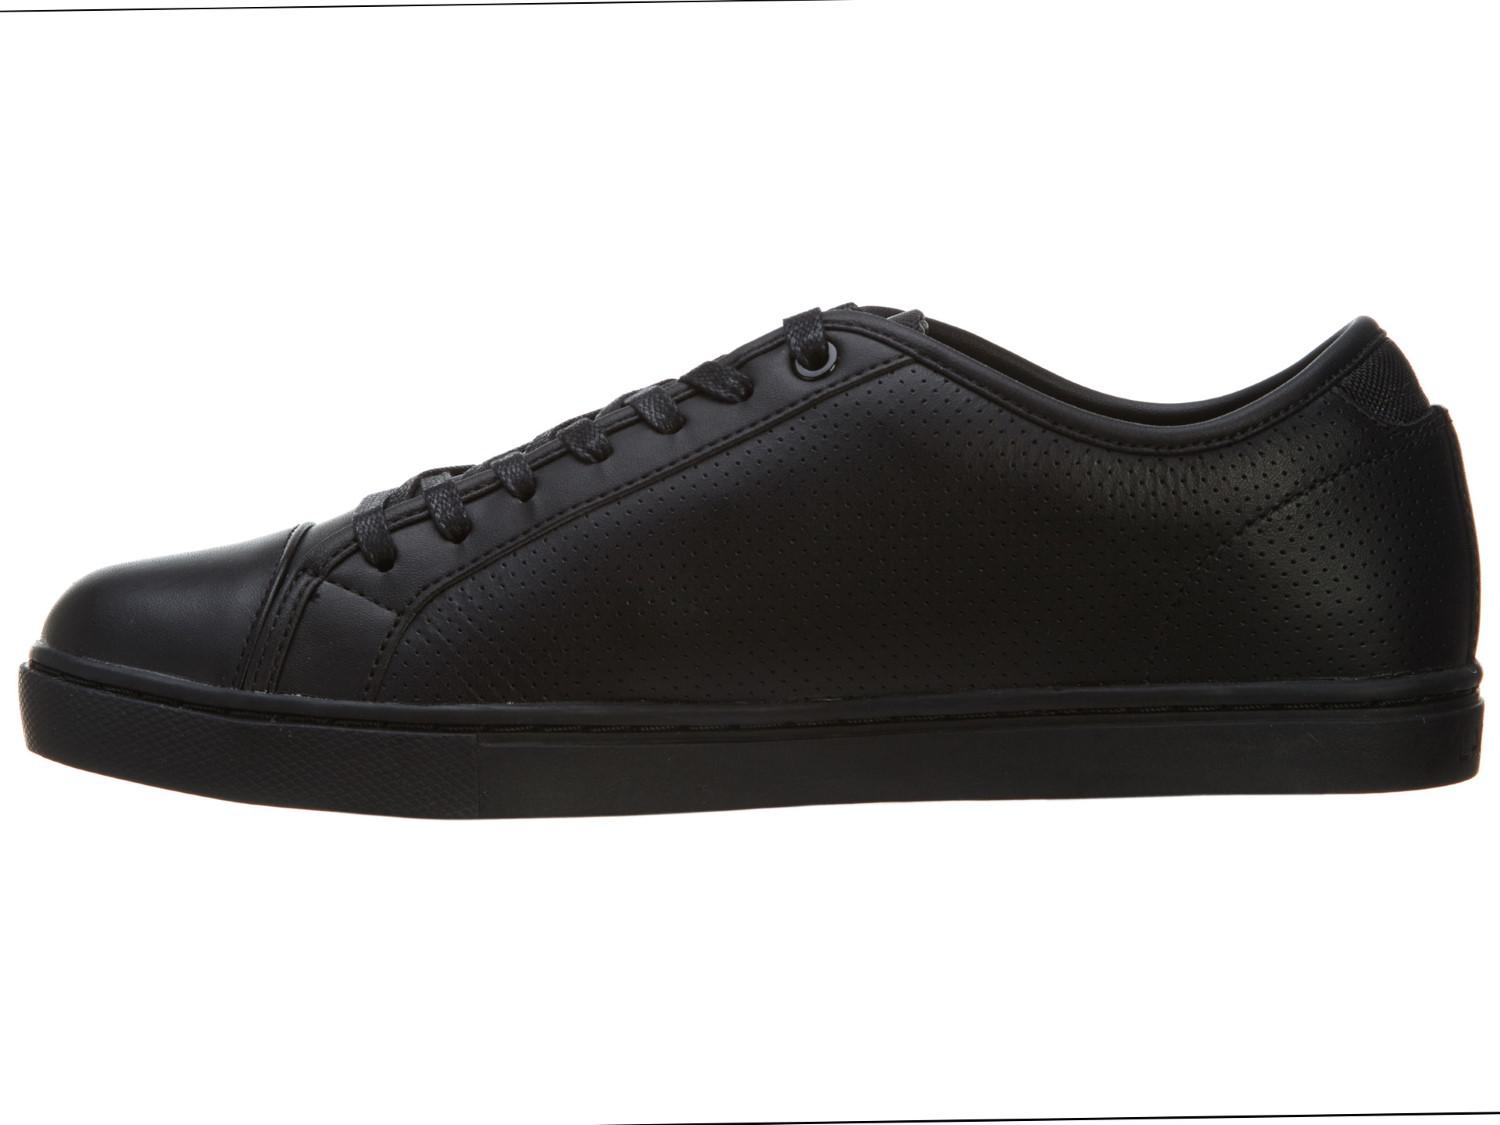 9663b5d13 Lyst - Lacoste Show Court Ctr Spm Leather Shoes in Black for Men